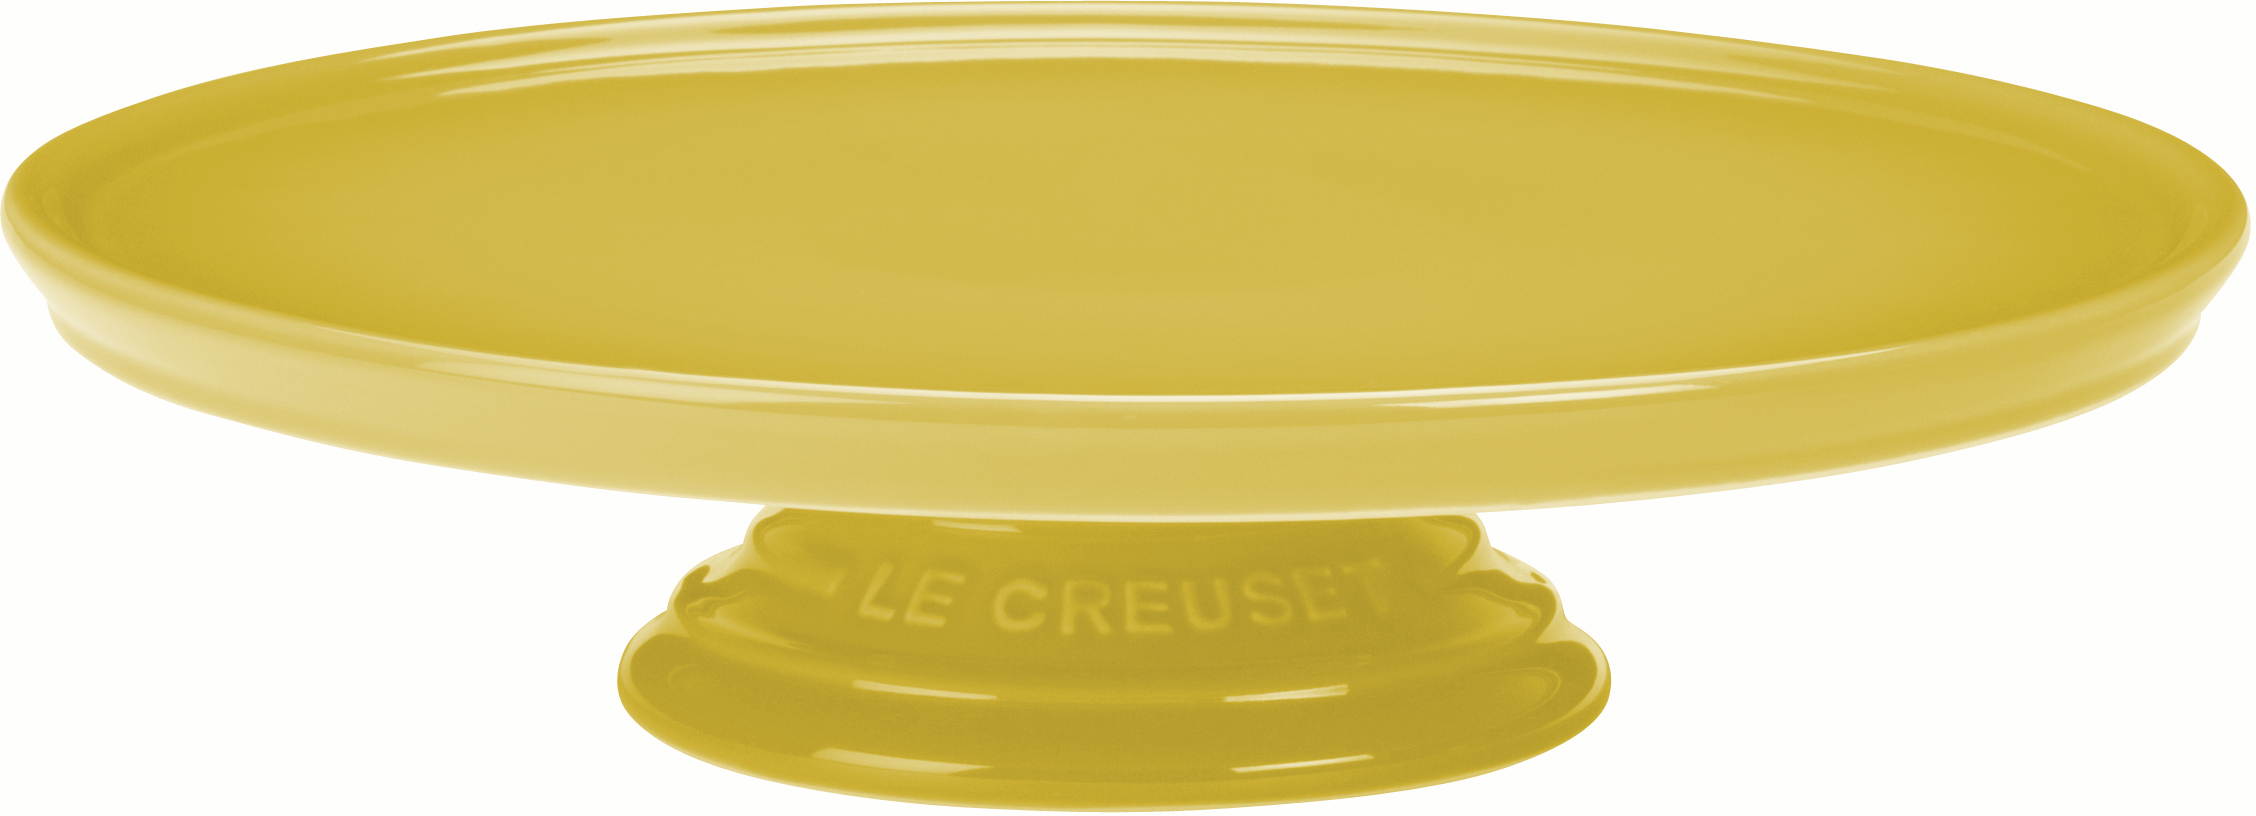 Le Creuset Soleil Yellow Stoneware Cake Stand